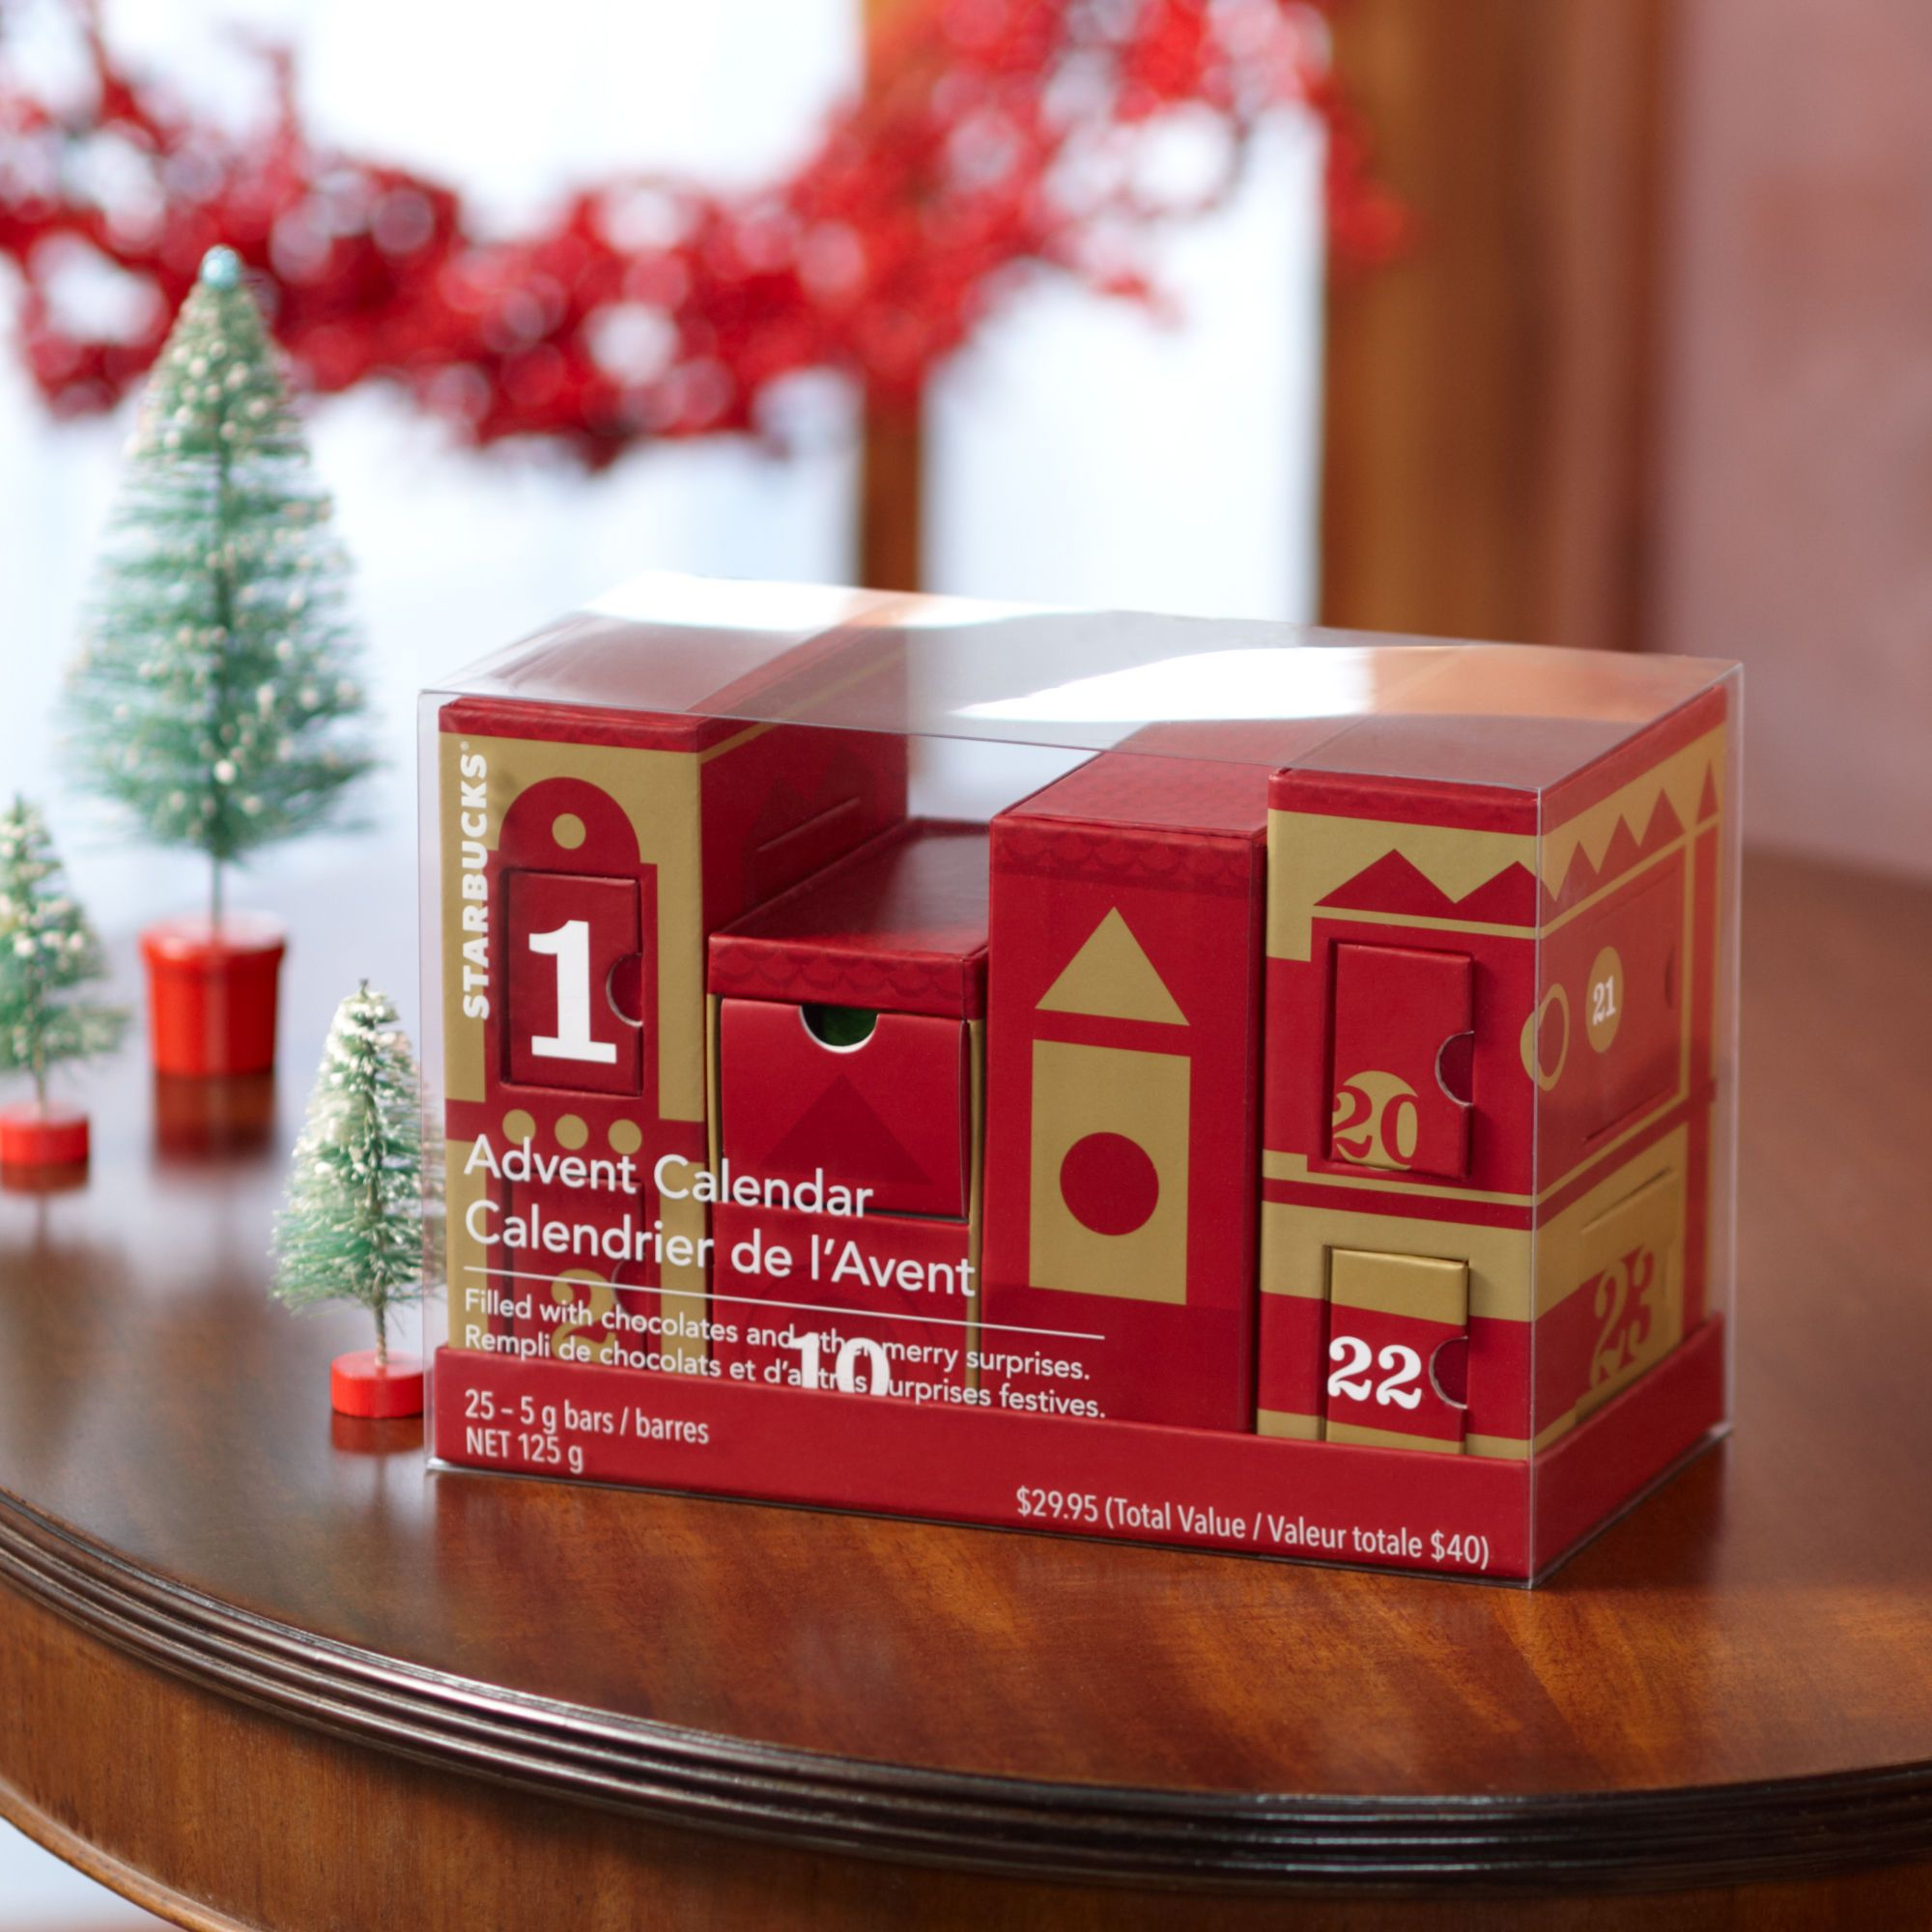 Starbucks® Advent Calendar (With images) Advent